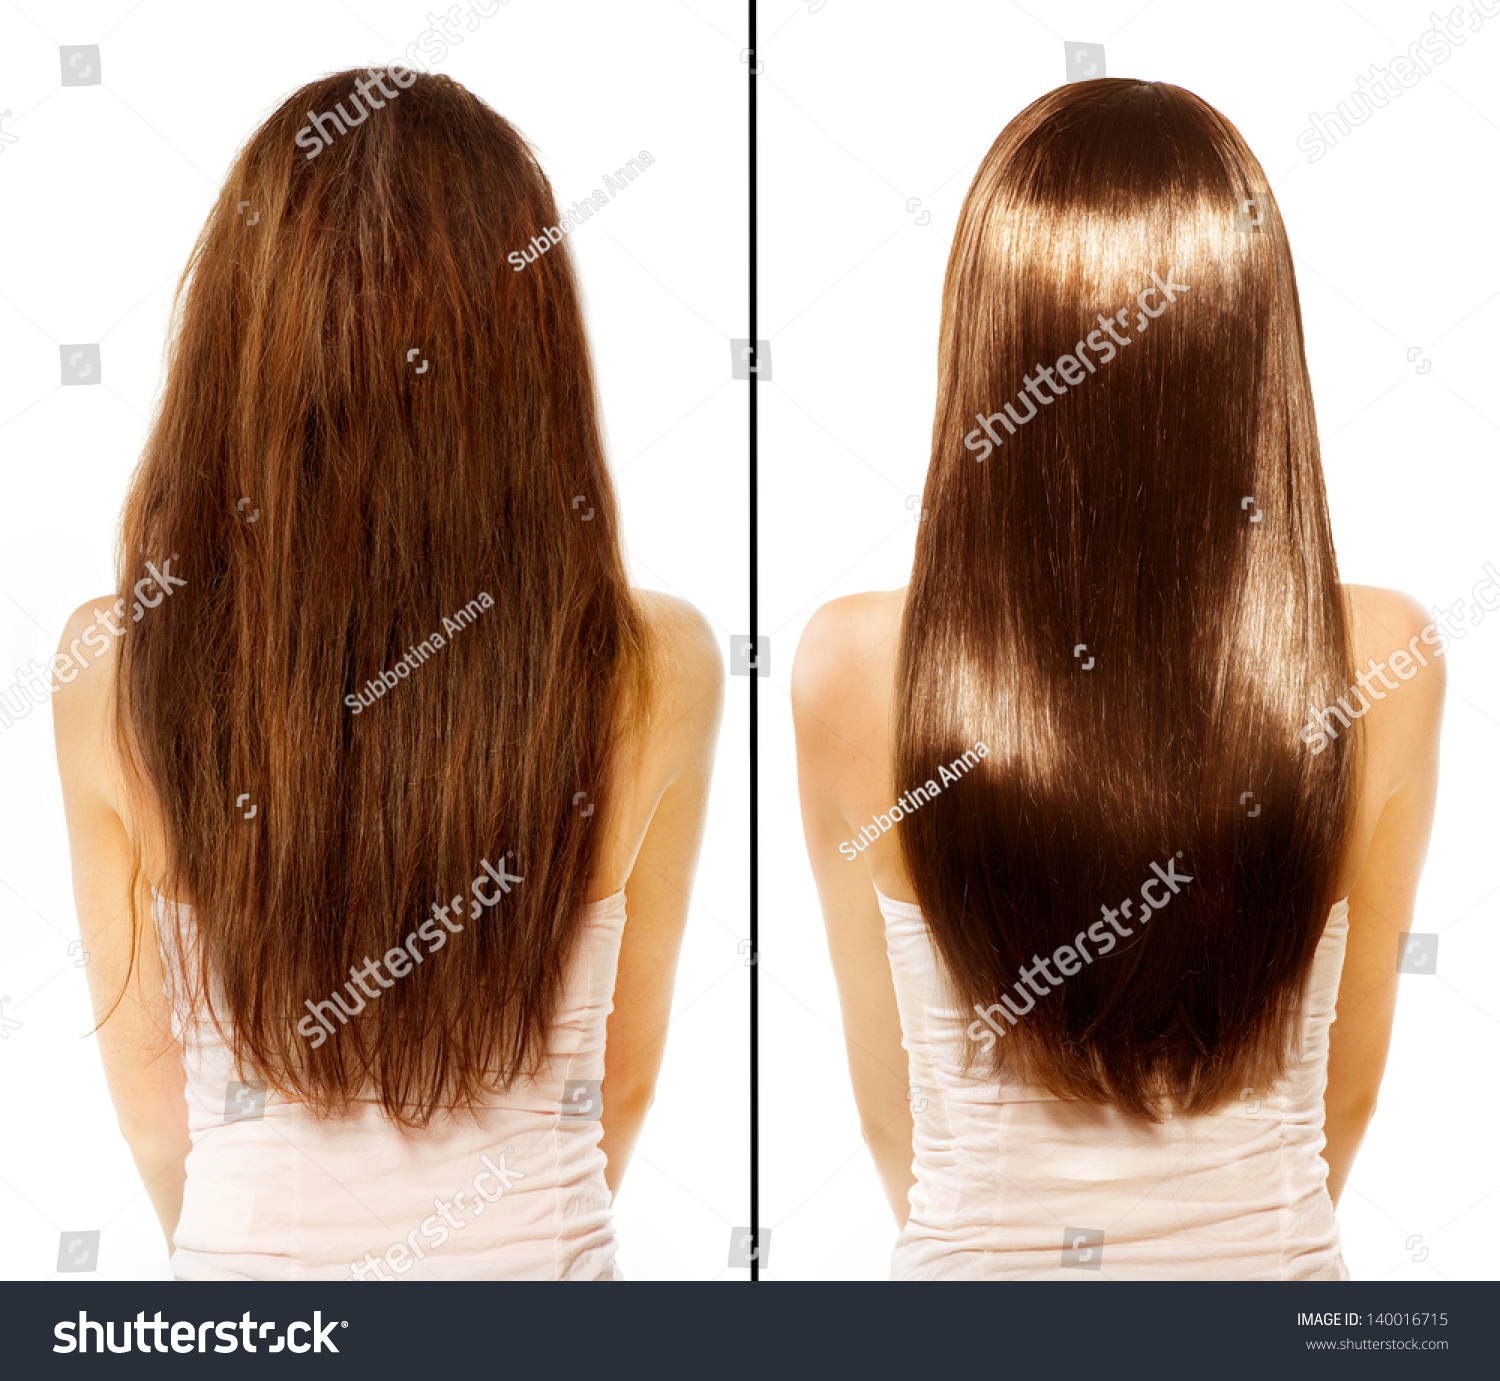 Hair Before After Advertising Portrait Hairstyle Stock